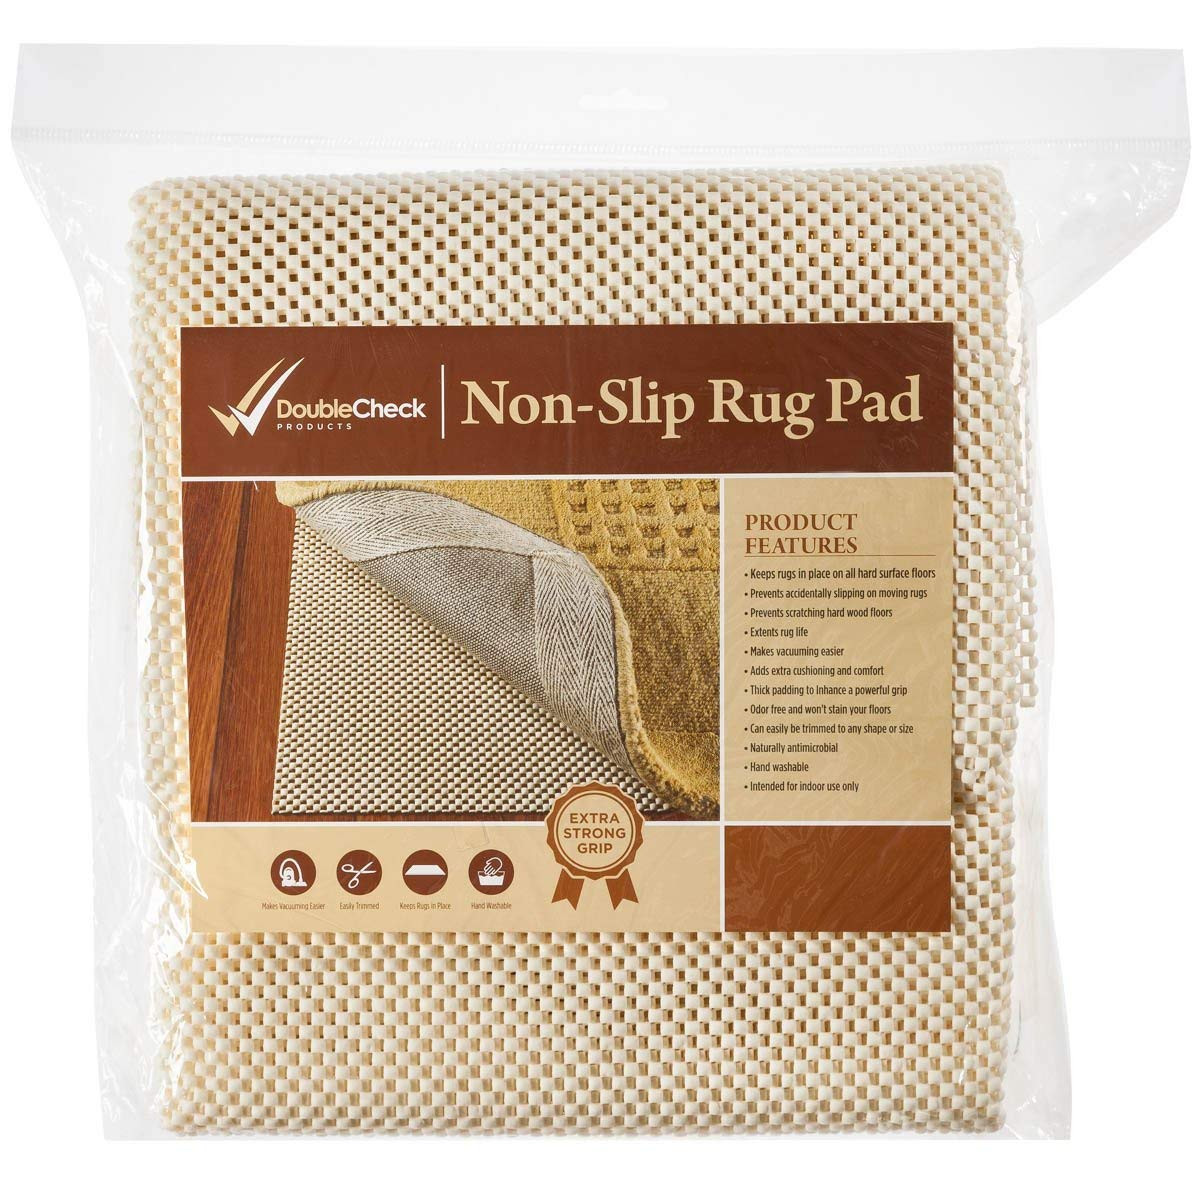 floor padding under hardwood of amazon com doublecheck products non slip area rug pad for hardwood inside amazon com doublecheck products non slip area rug pad for hardwood floors size 2 x 8 extra strong grip thick padding and kitchen dining